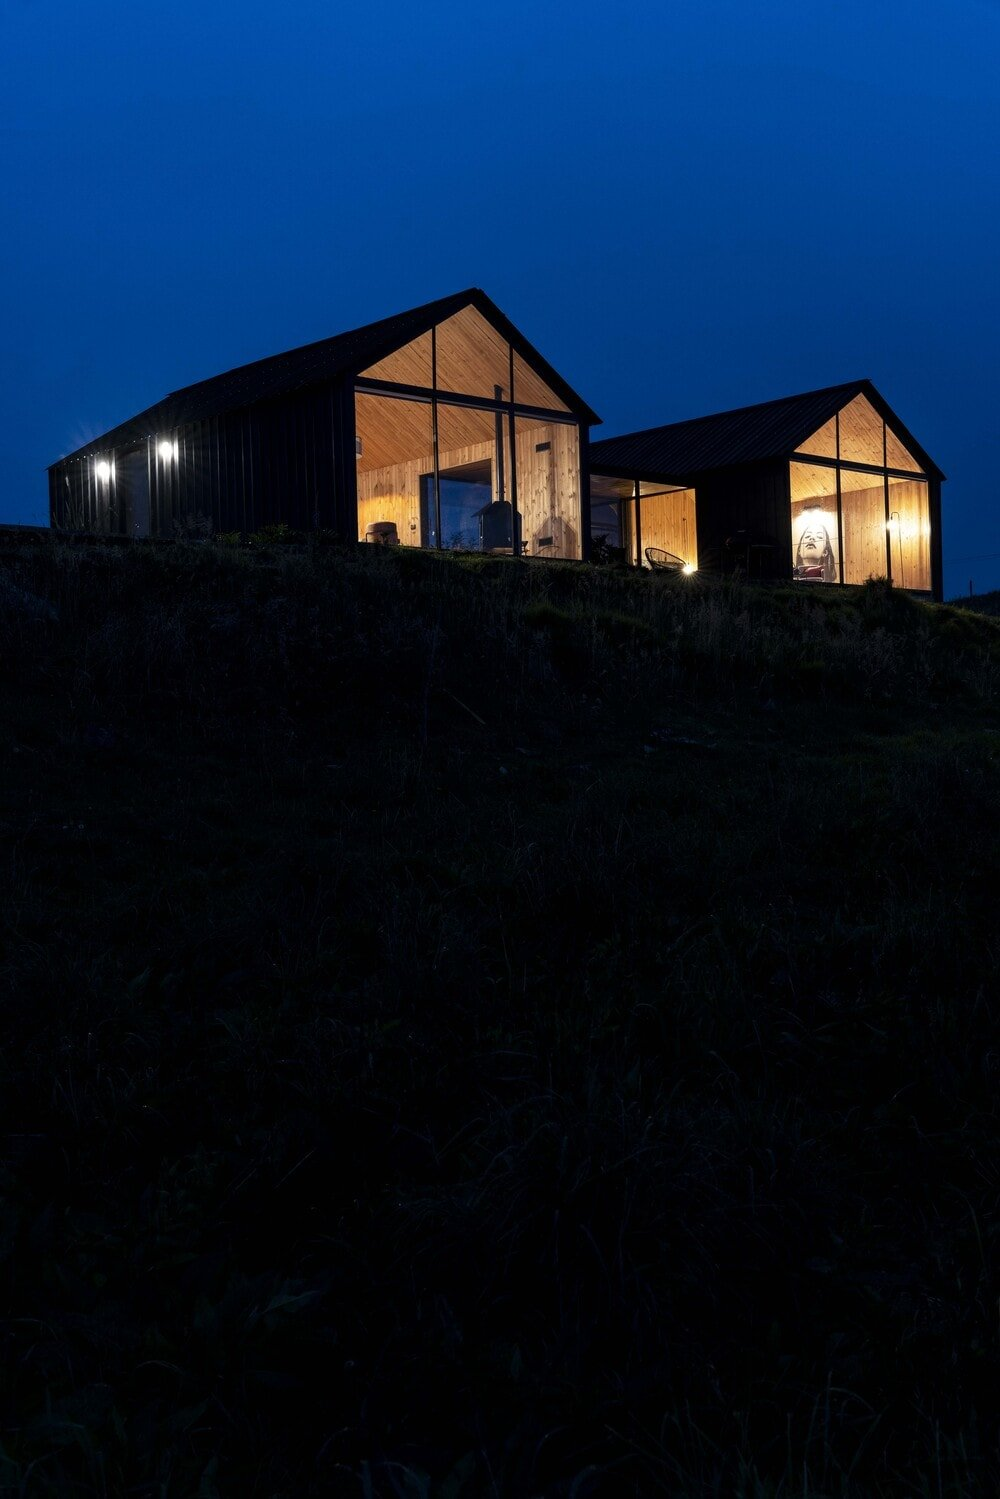 This is a nighttime view of the house that showcases the warm glow of the house.